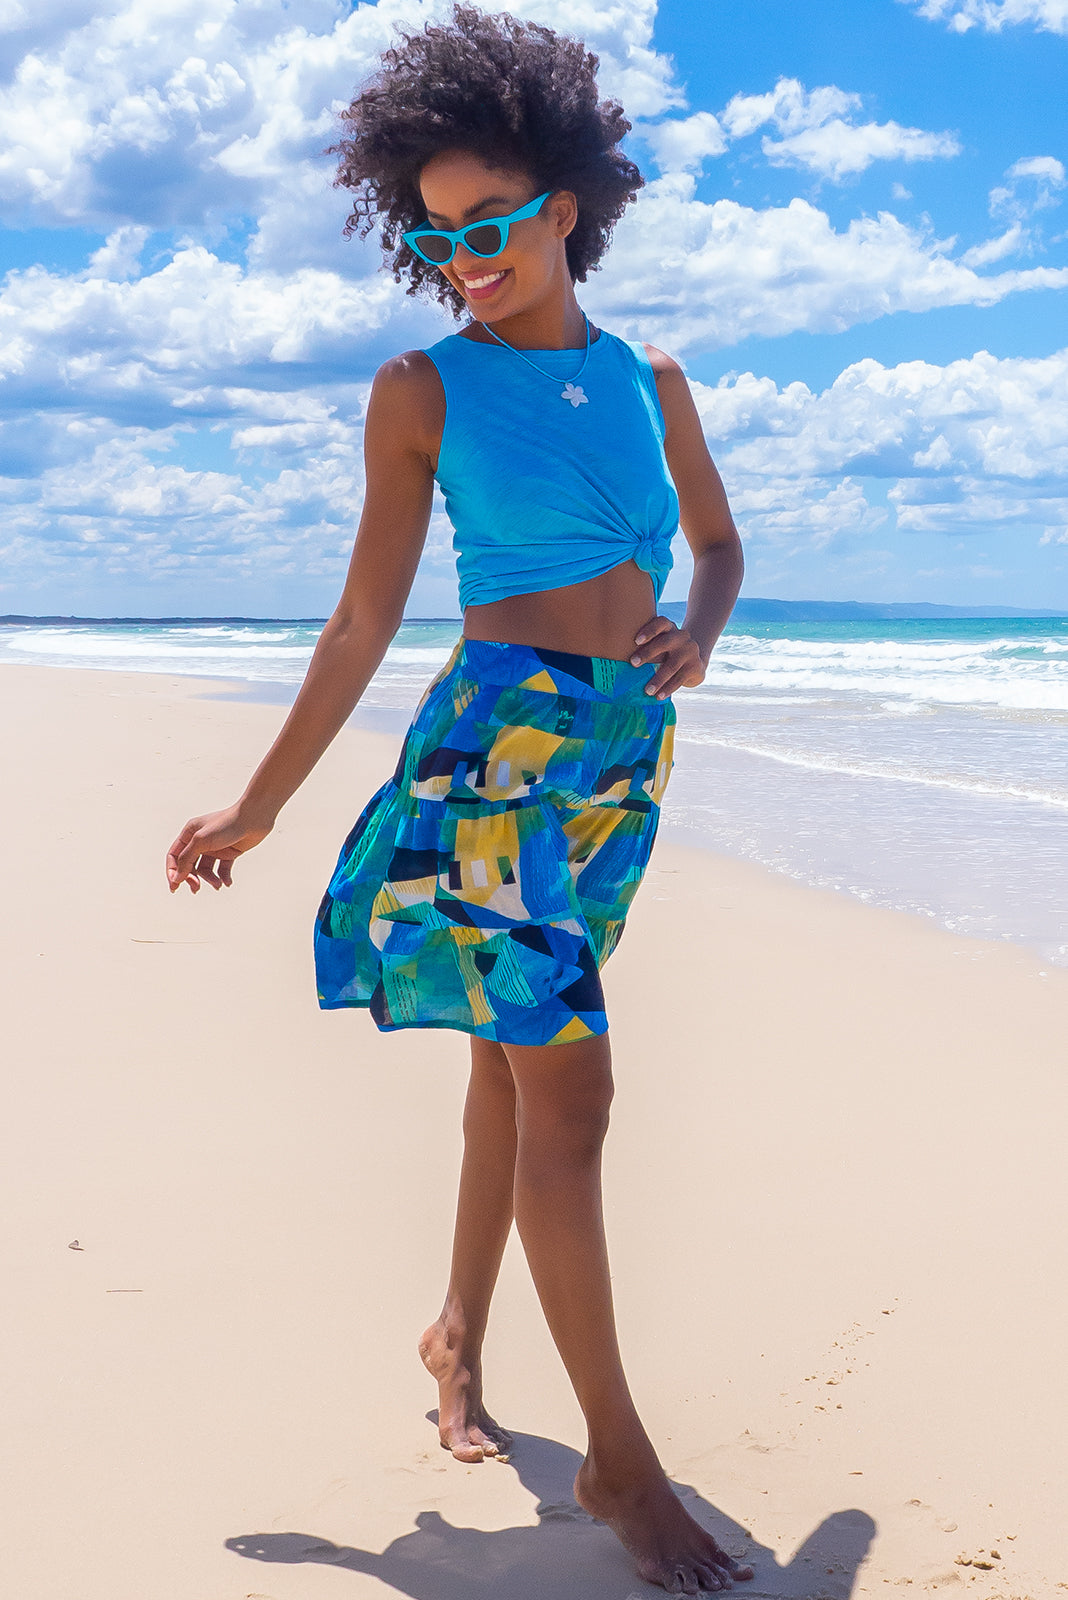 The Valencia Geometric Mini Skirt features elasticated waistband with decorative tie, tiered for fullness, side pockets and 50% cotton, 50% viscose in blue/green geometric print.